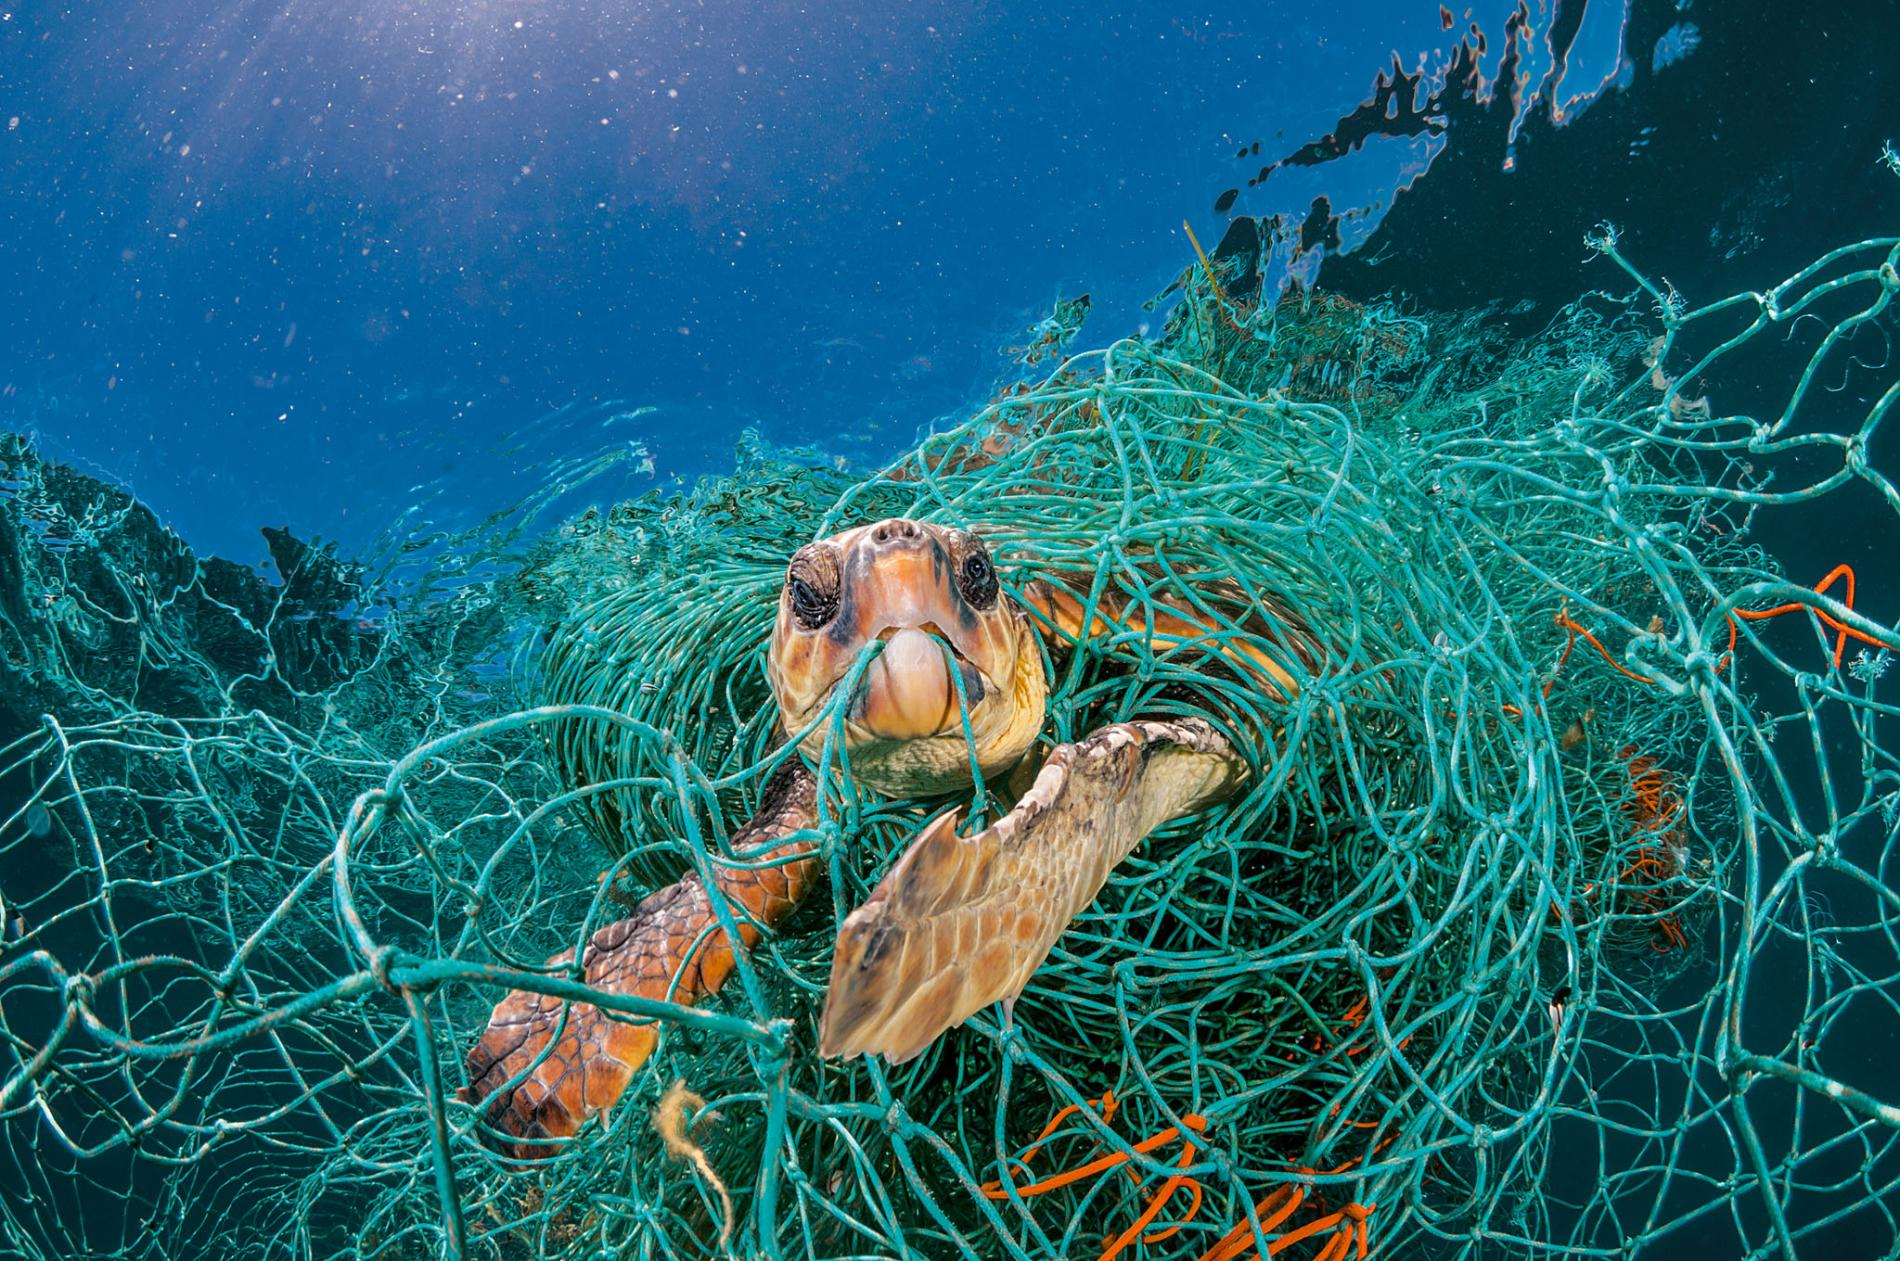 A turtle ensnared in a net, by 2050 the amount of plastic in the ocean will outnumber fish by weight (National Geographic photo)